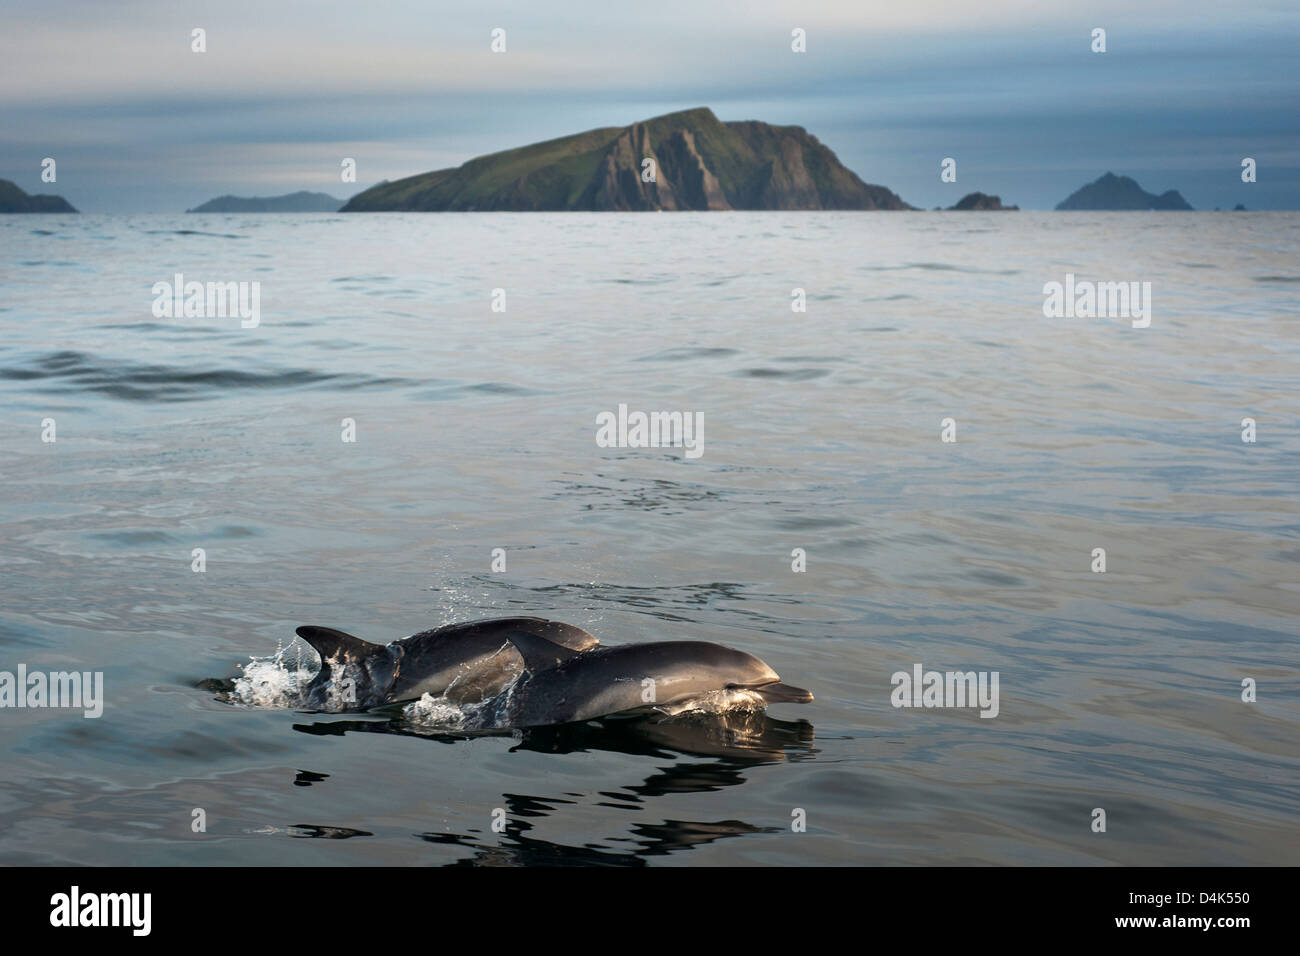 Dolphins swimming in water - Stock Image